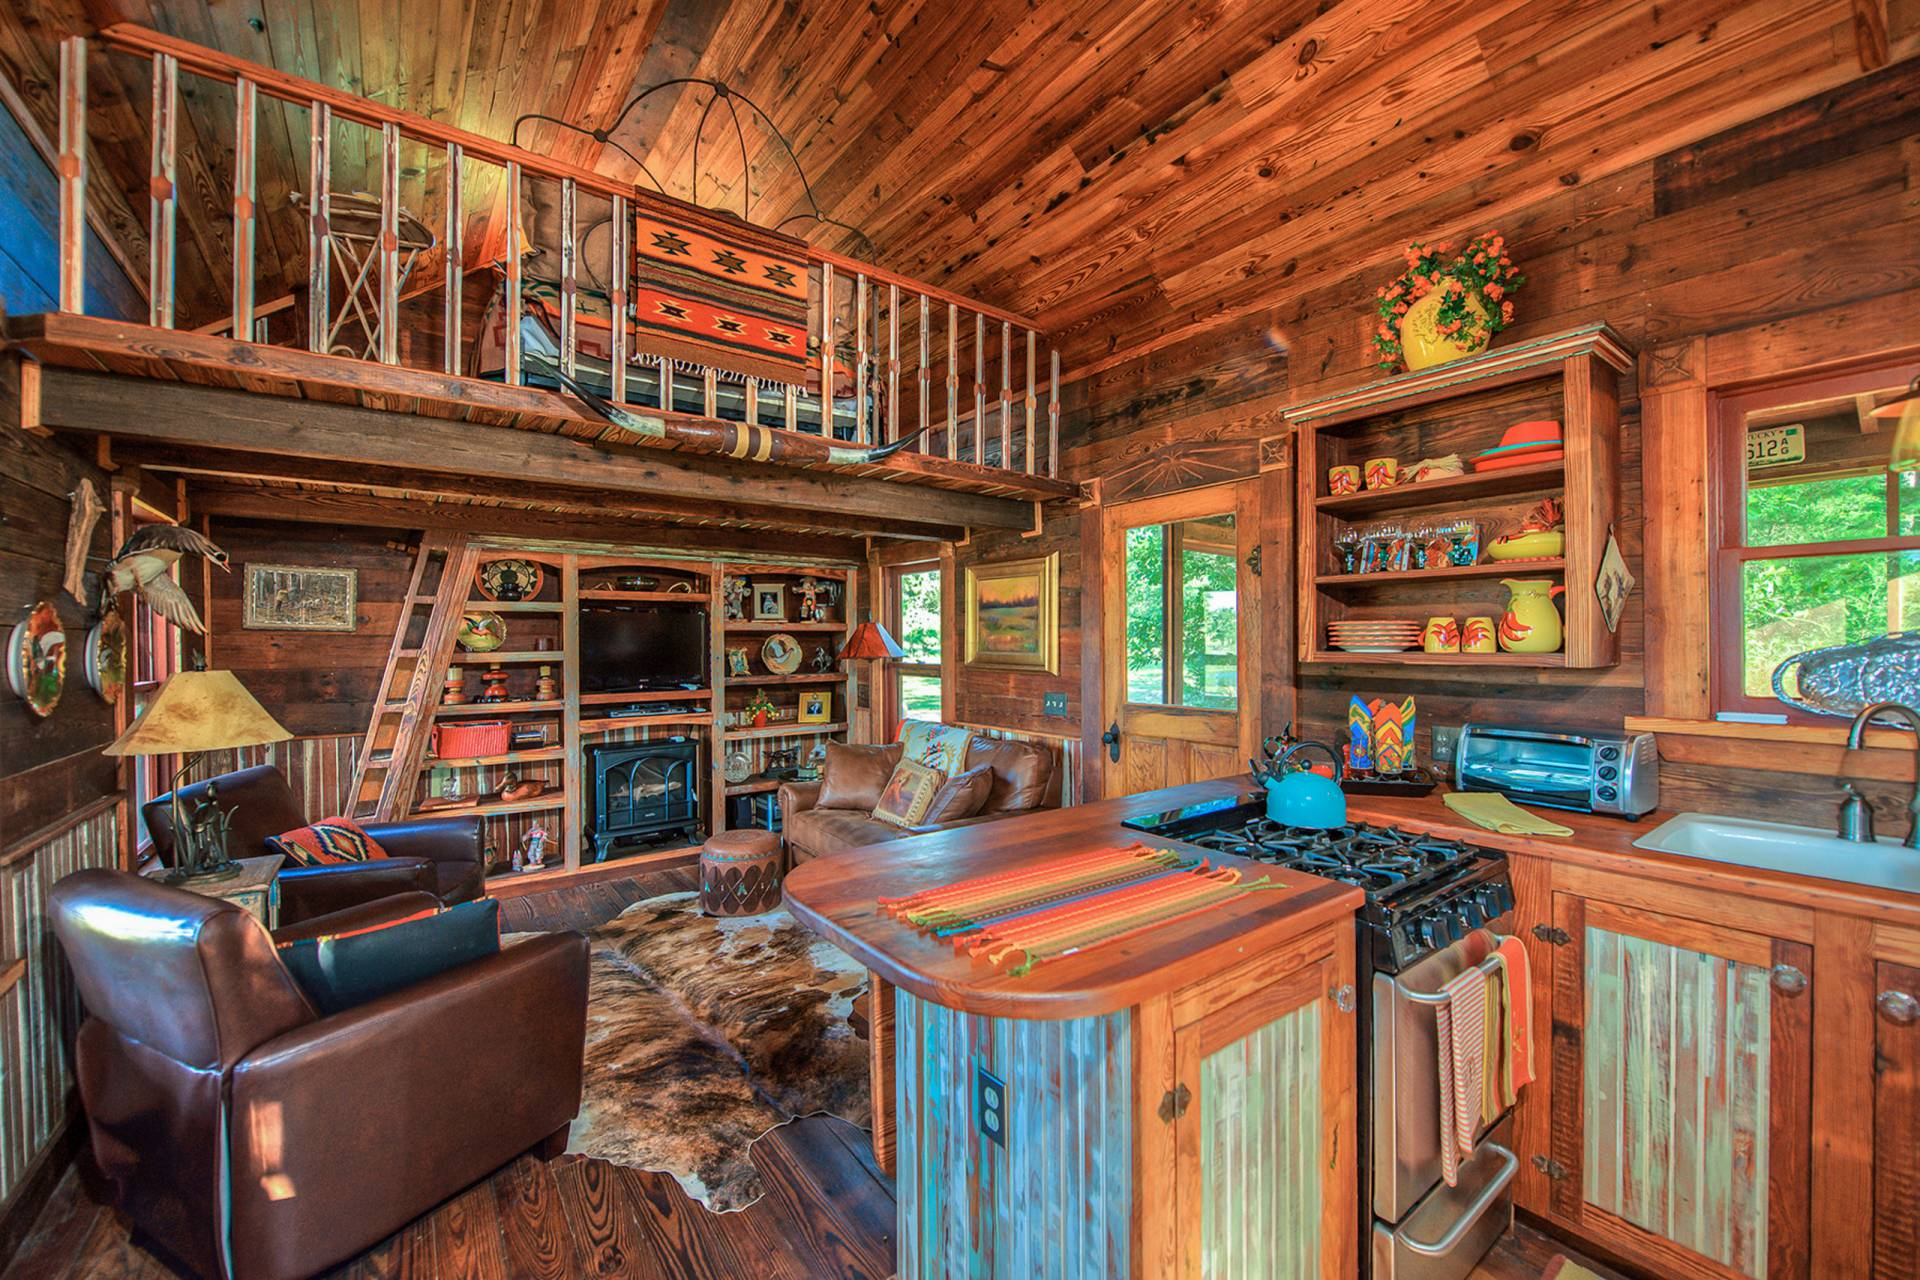 Ordinaire The Rustic Cowboy Cabin Was Built From Salvaged Materials. The 12u0027x28u0027 Cabin